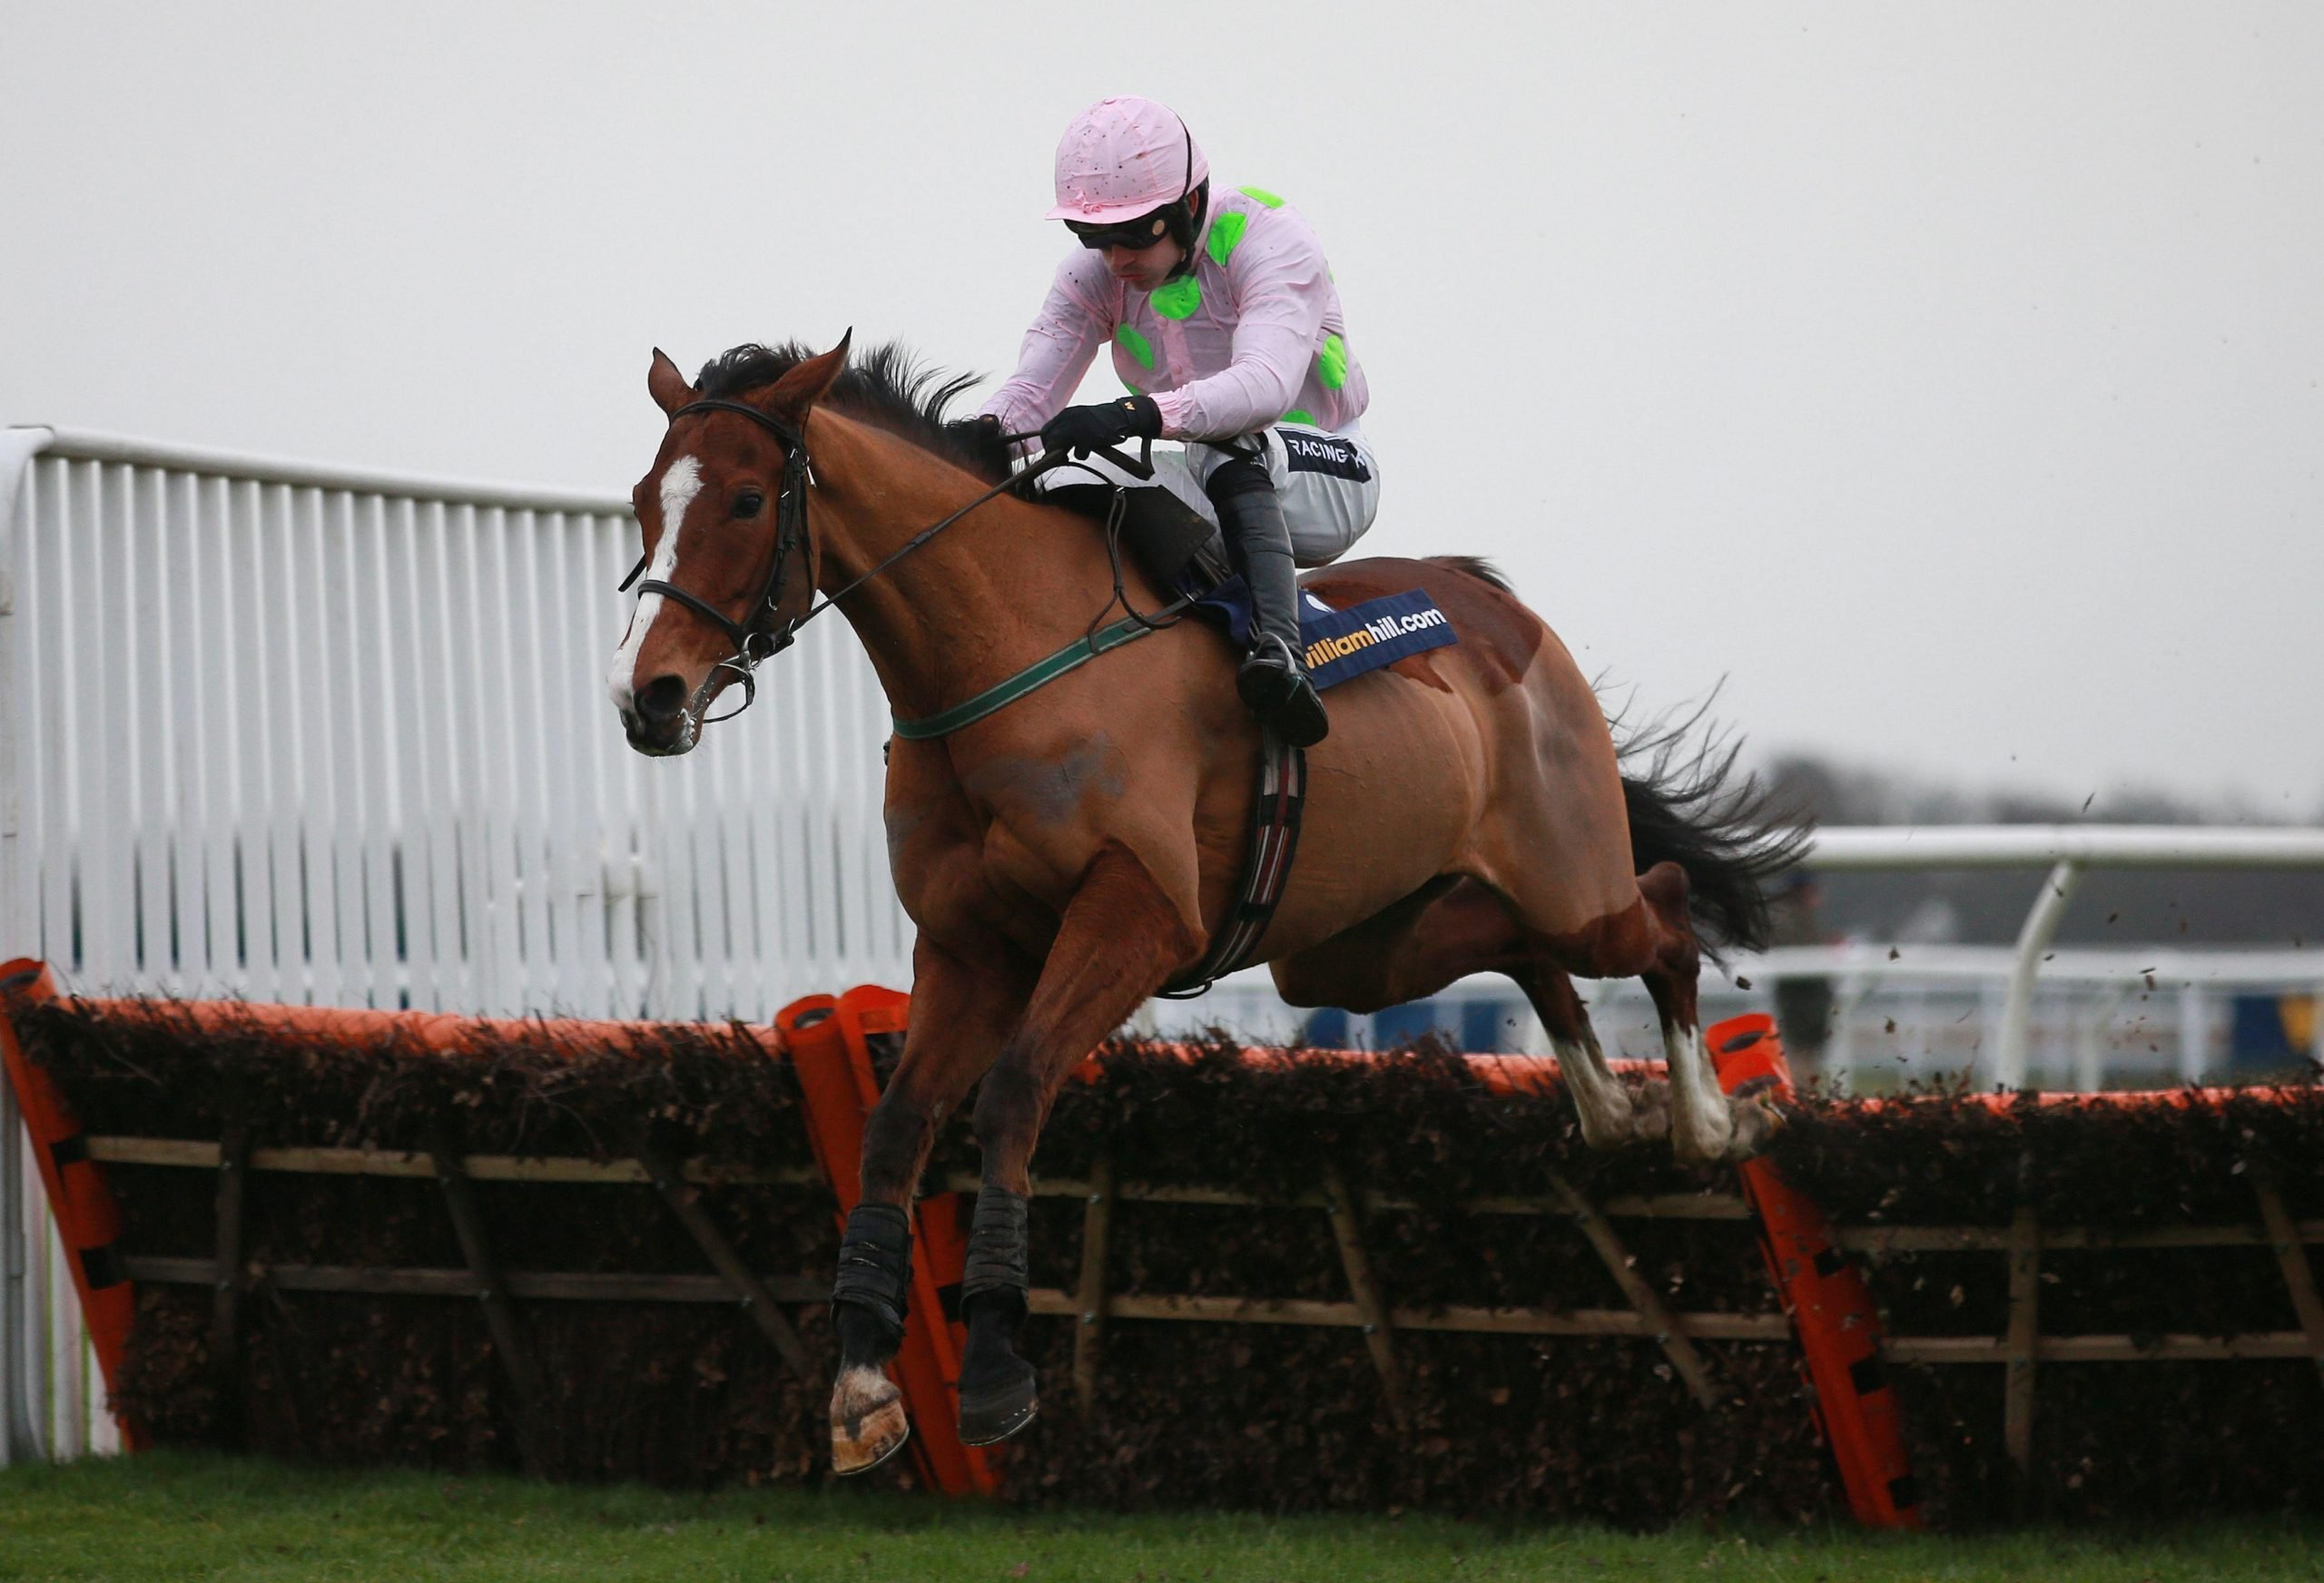 KEMPTON REWIND: Faugheen clears away with ease in the 2014 Christmas Hurdle